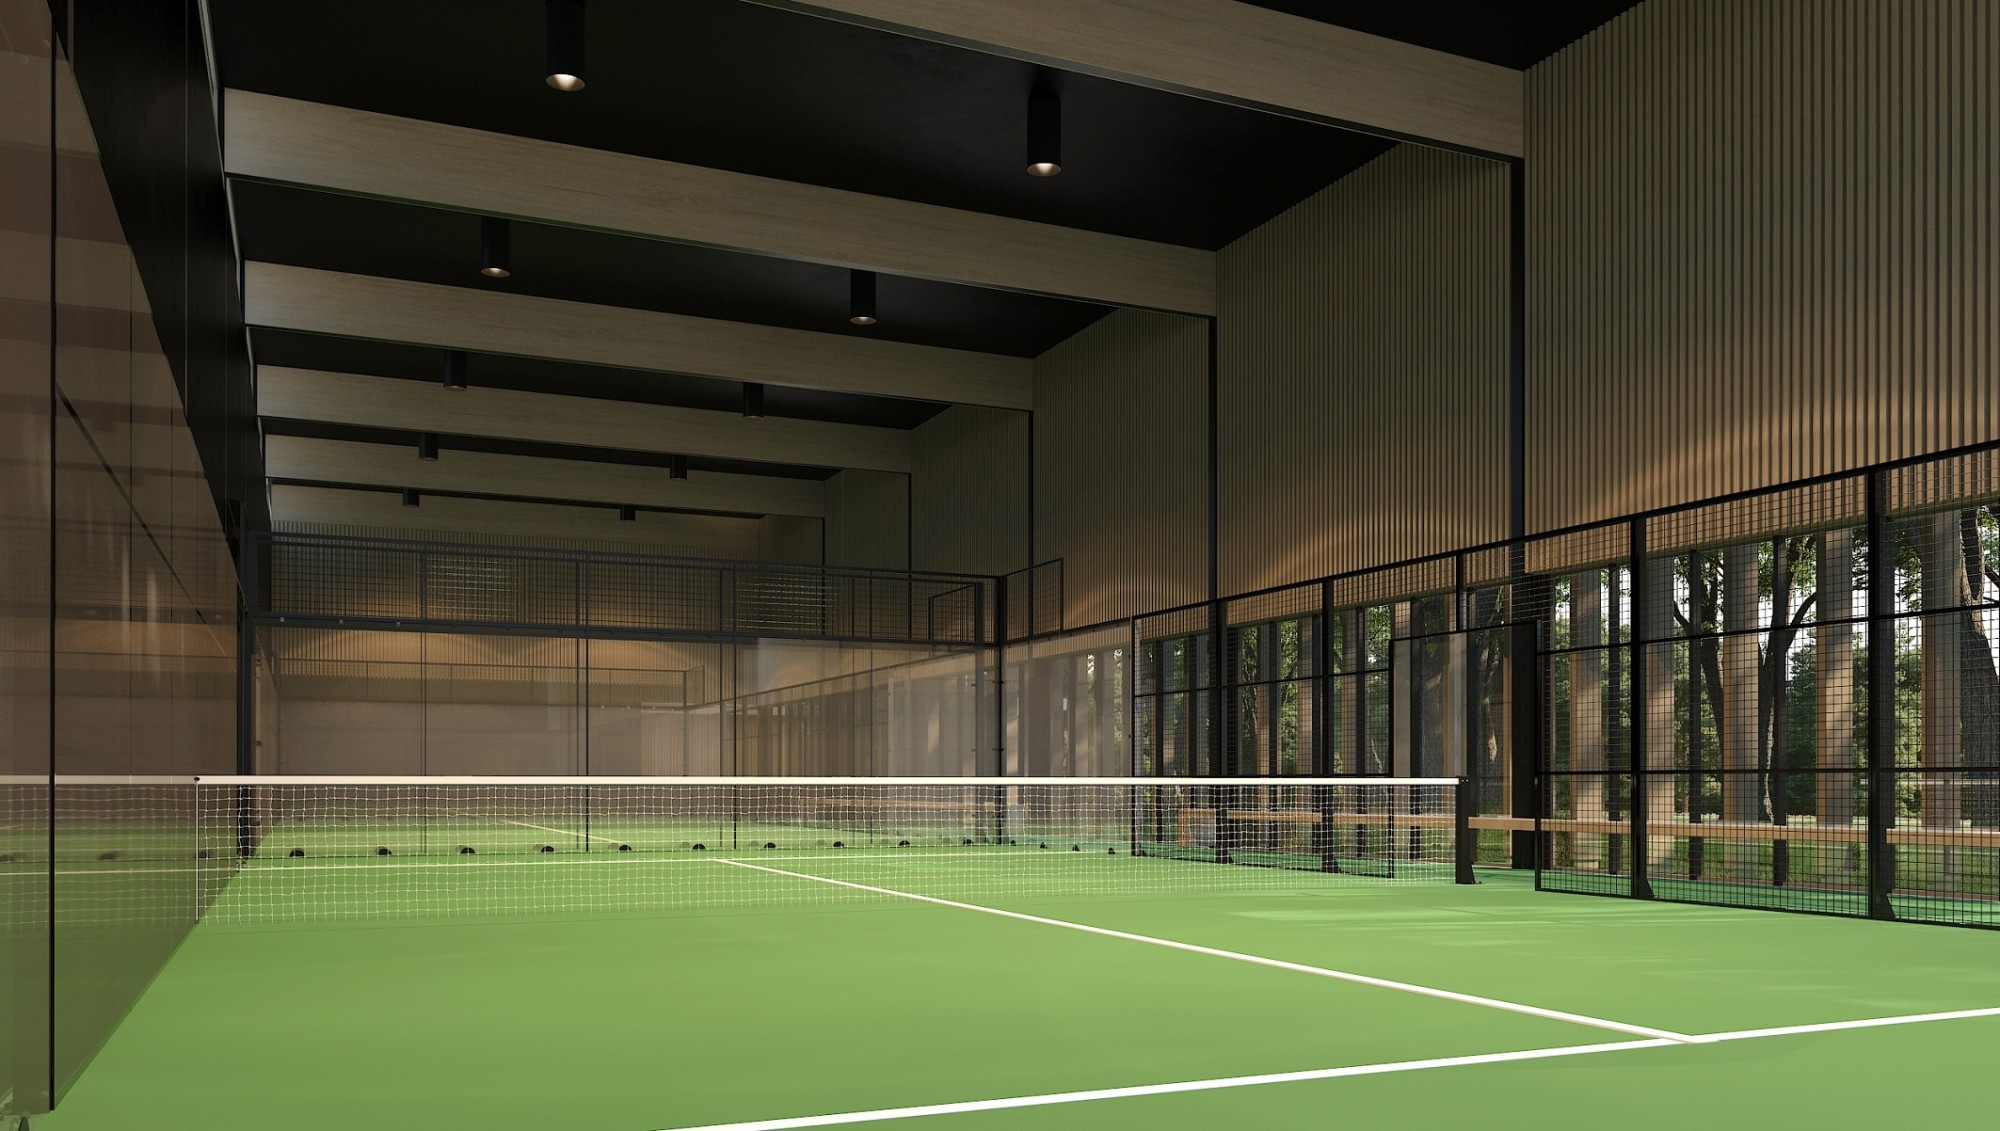 Adare Manor is delighted to announce plans to launch The Padel Club